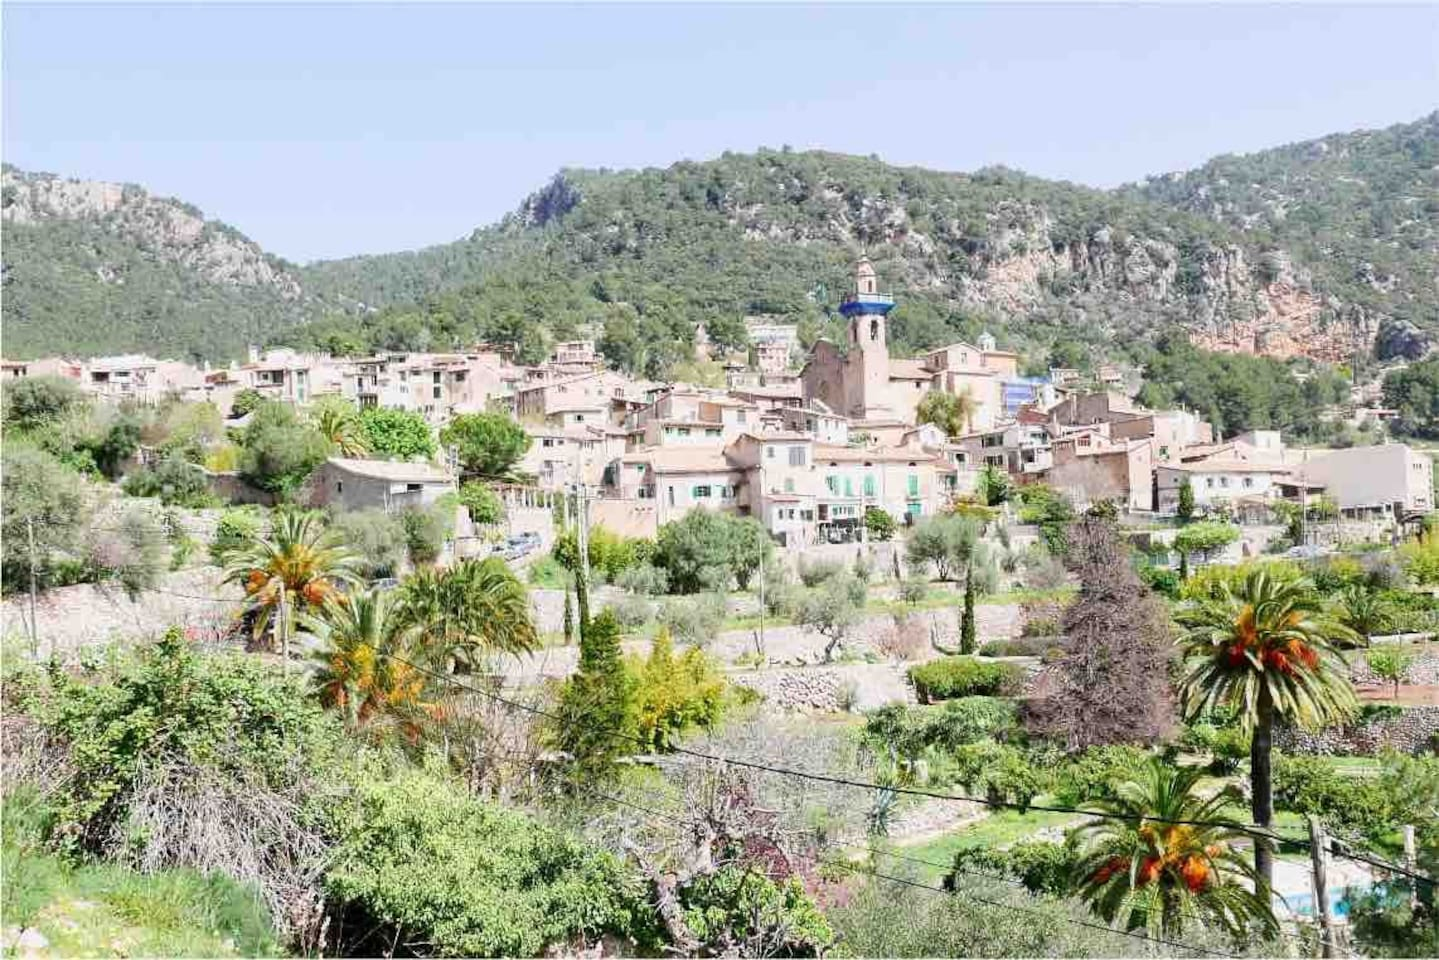 The beautiful village of Valldemossa